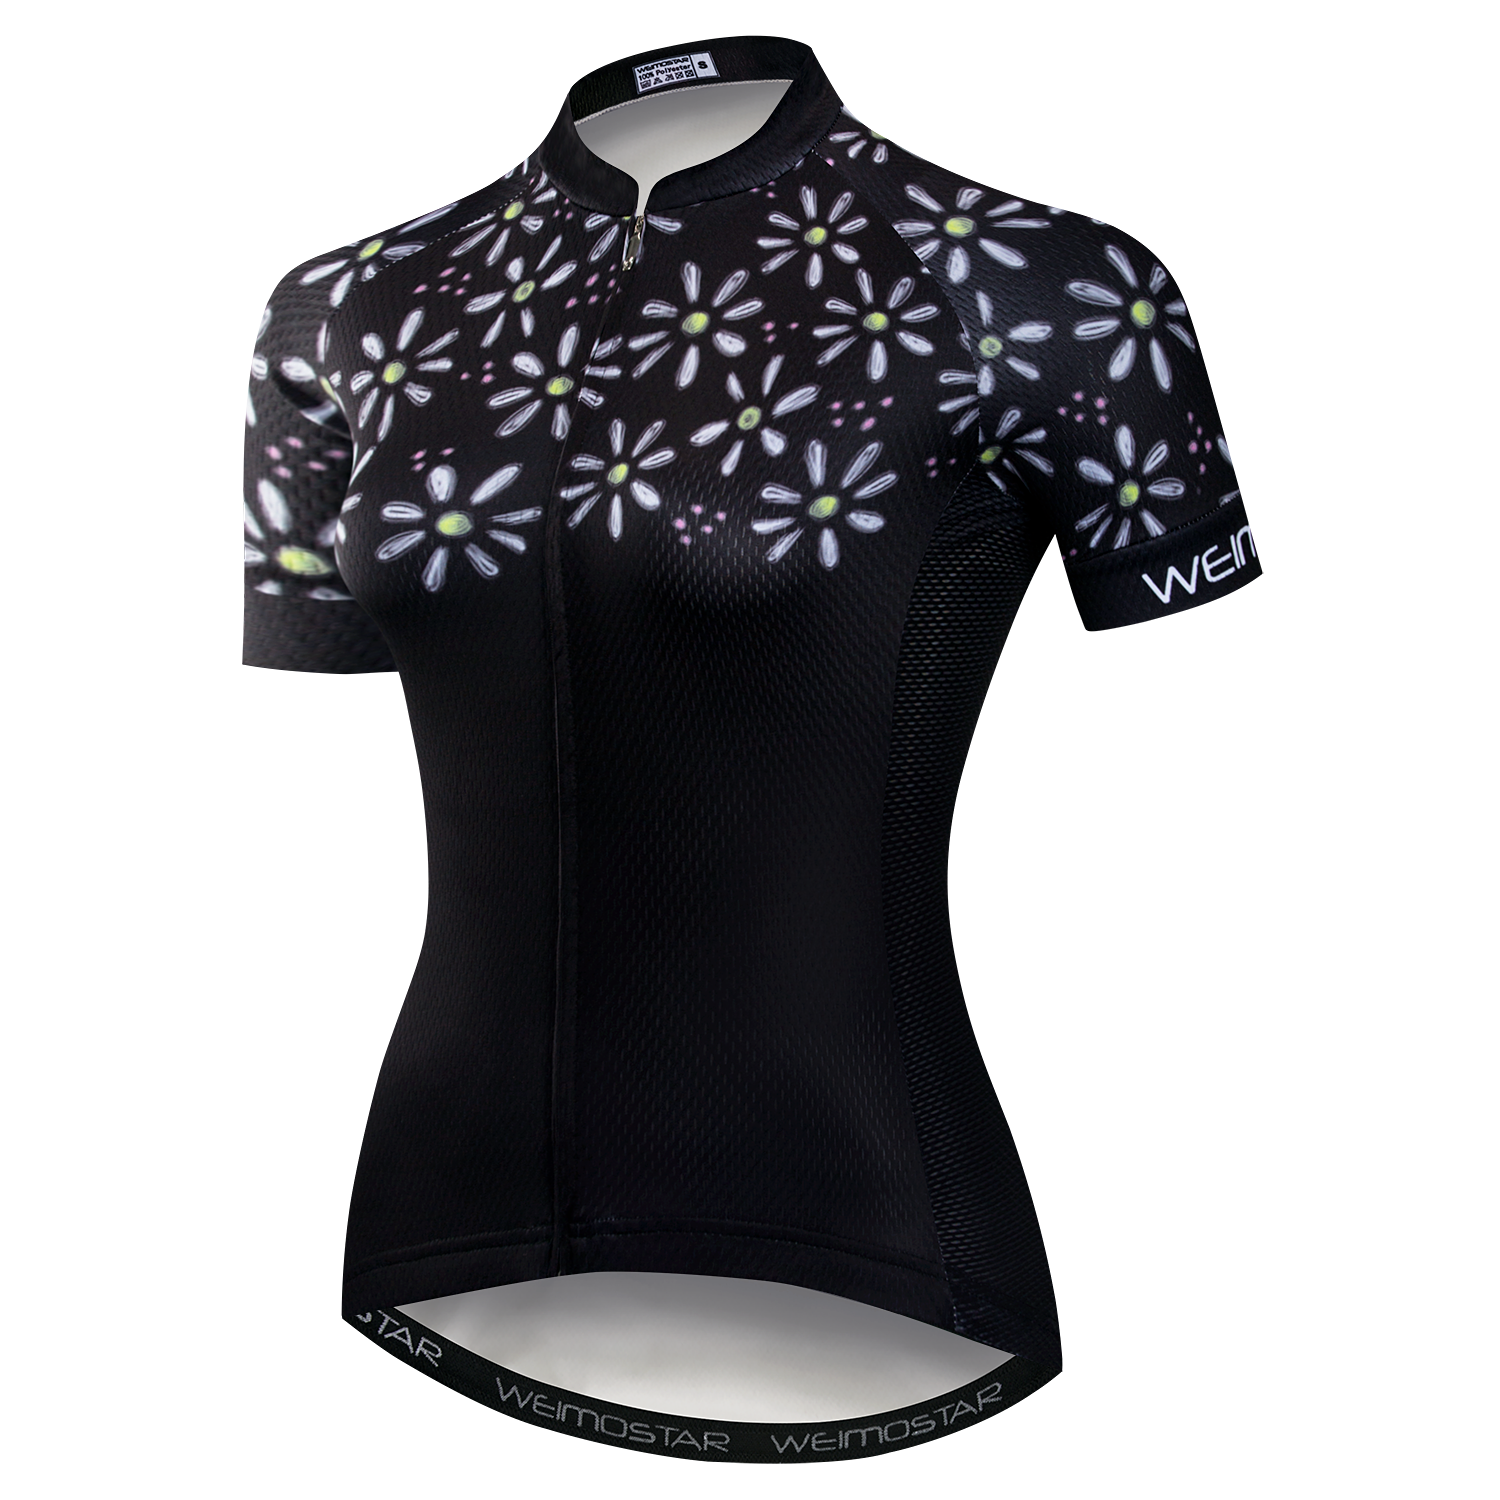 b2dcf1bc Details about Cycling Jersey 2018 Women's Bike Short Sleeve Bicycle MTB  Black Clothes Tops